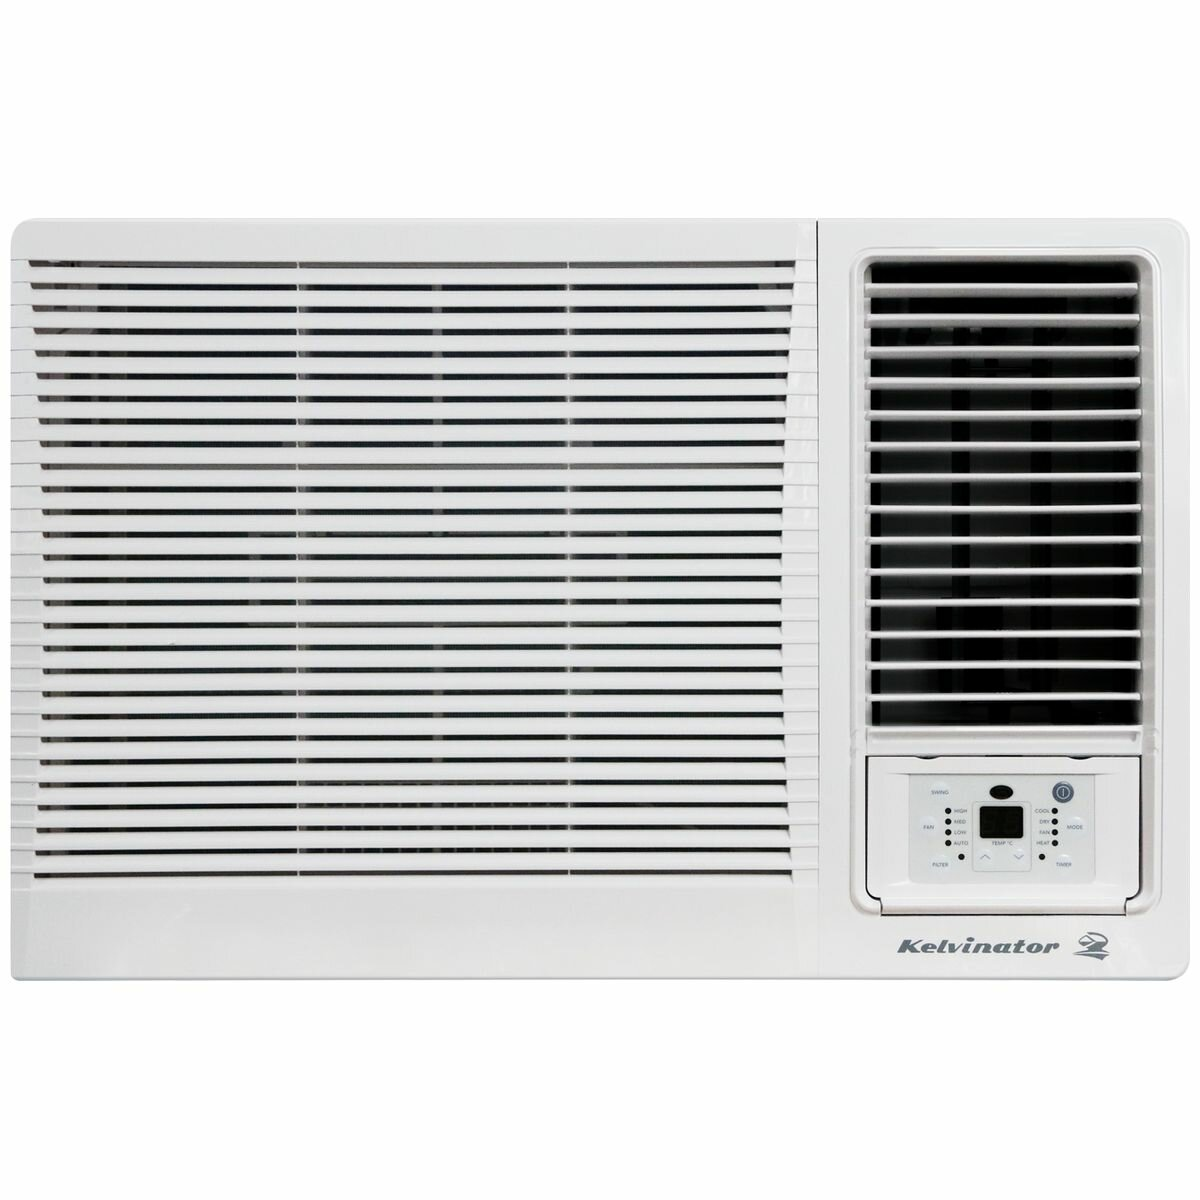 Kelvinator 3.9kW Window-Wall Reverse Cycle Air Conditioner KWH39HRF - FREE Delivery & Price Match* image